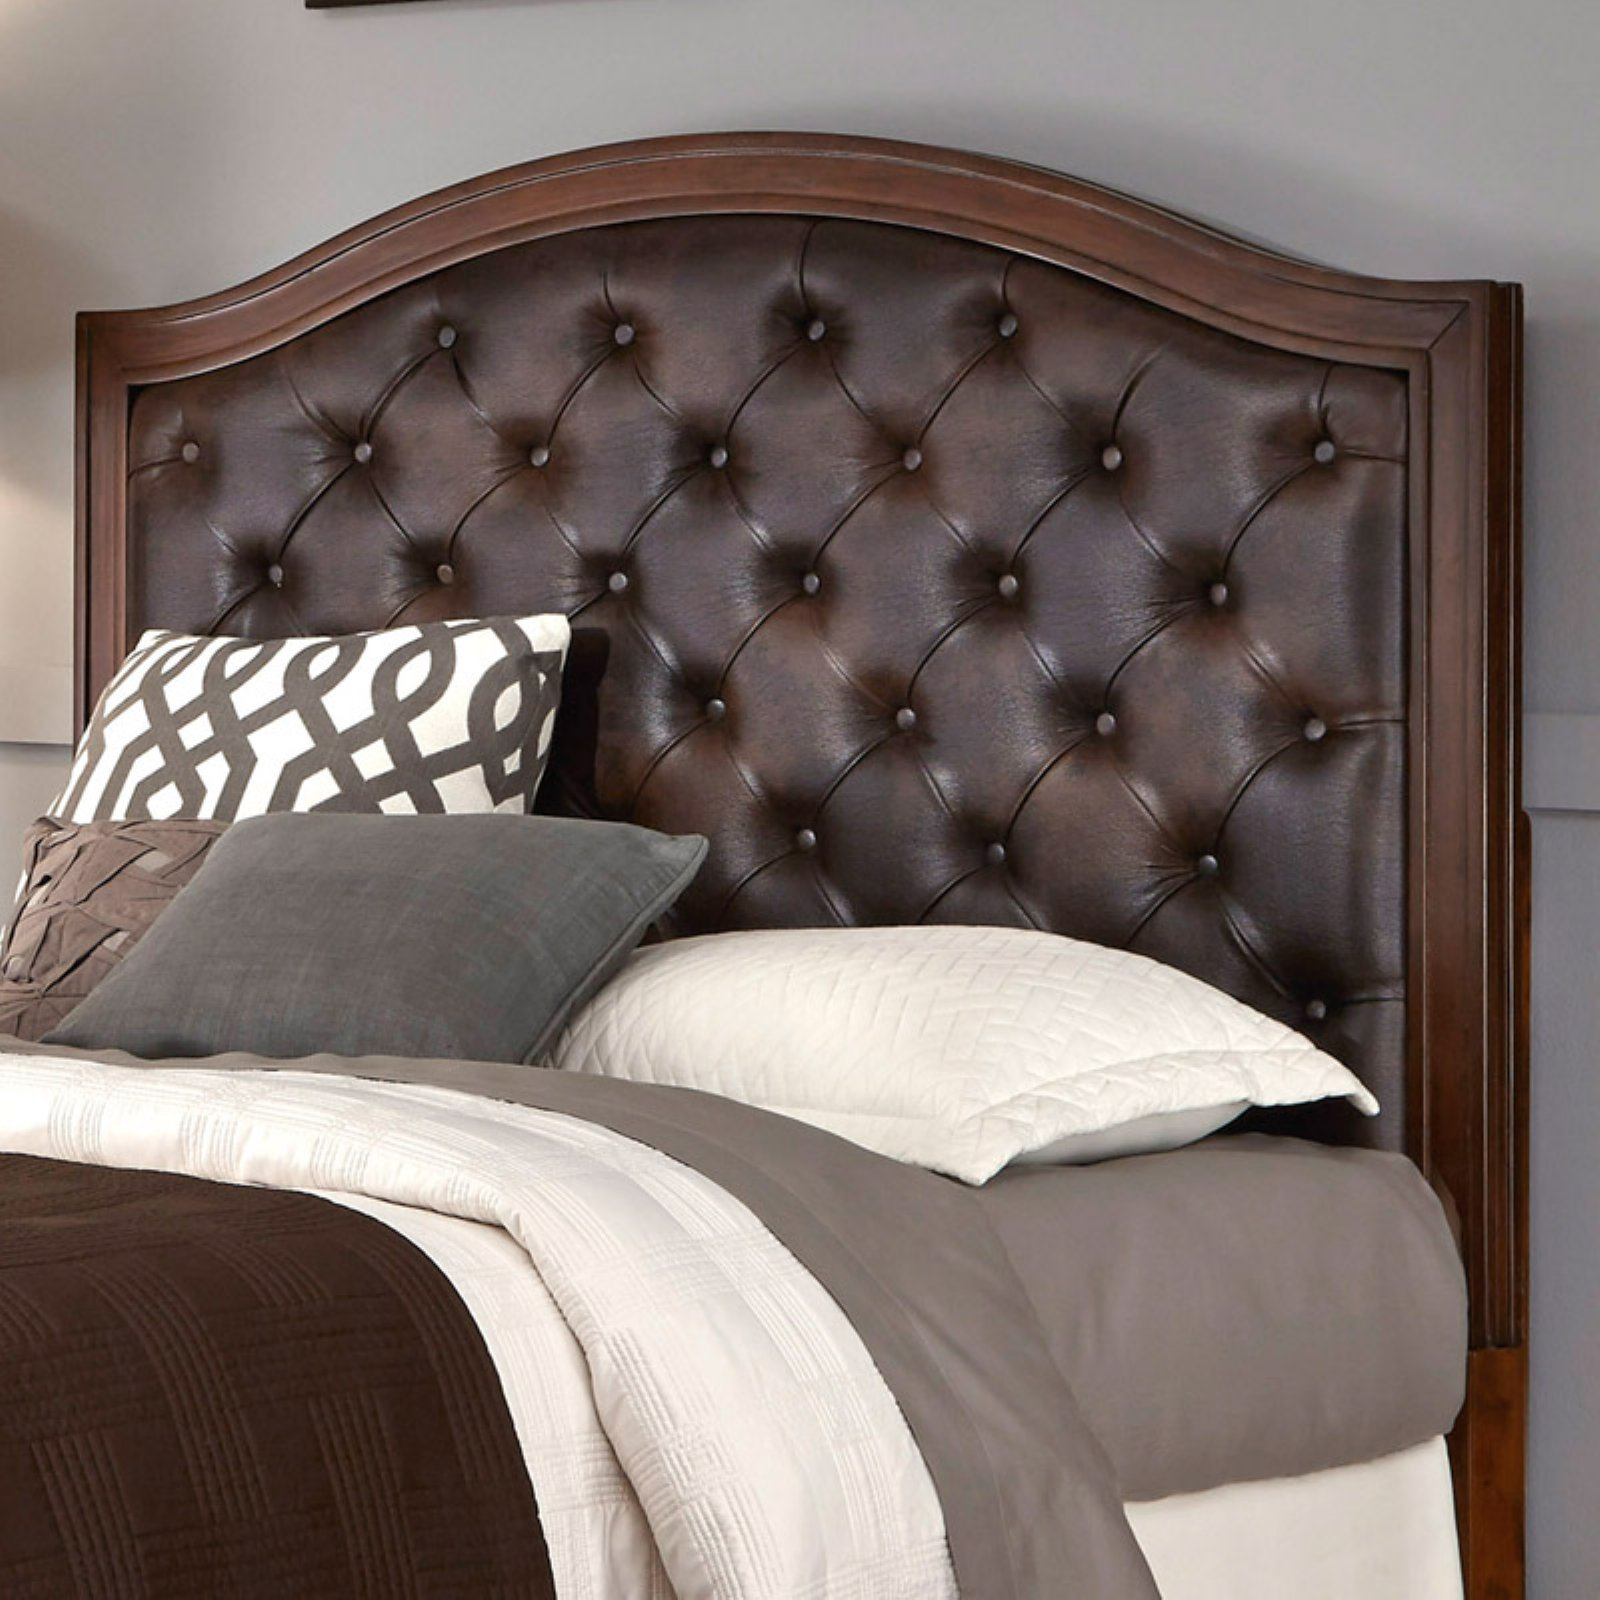 Duet King Tufted Diamond Camelback Bed, Brown Leather